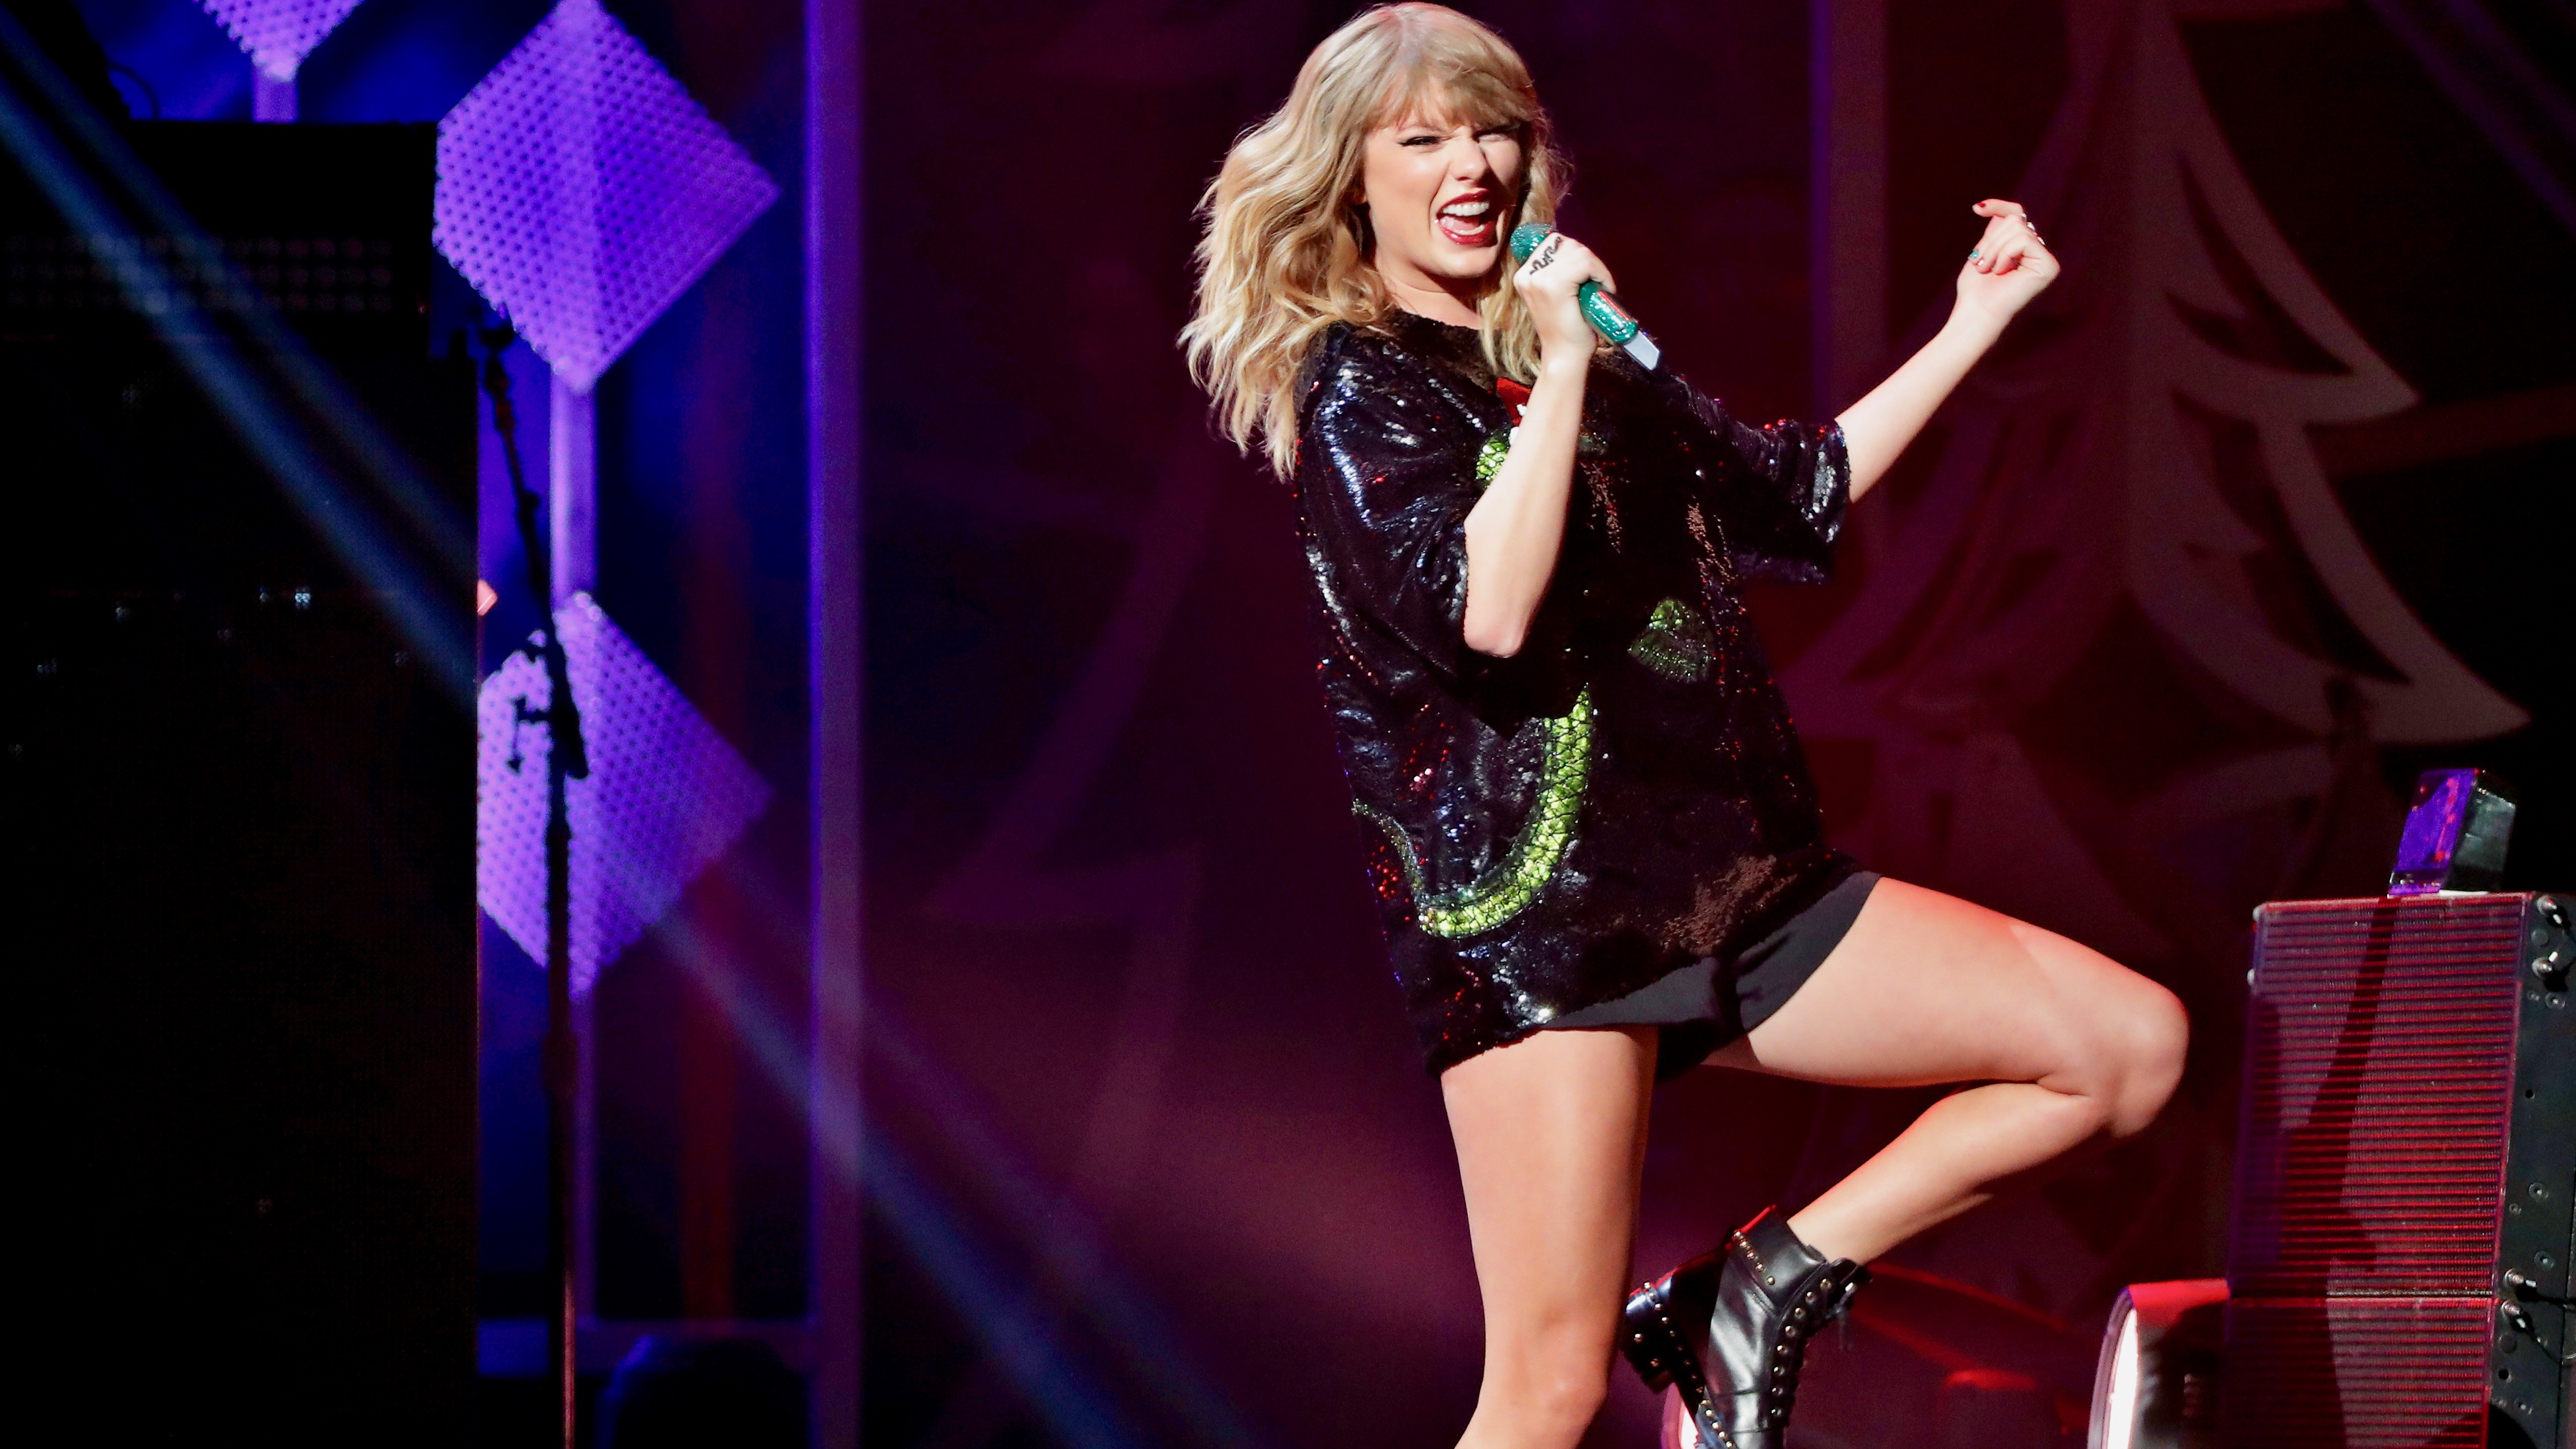 Taylor Swift Gets A Win And A Warning From Judge In Shake It Off Copyright Case Quartz